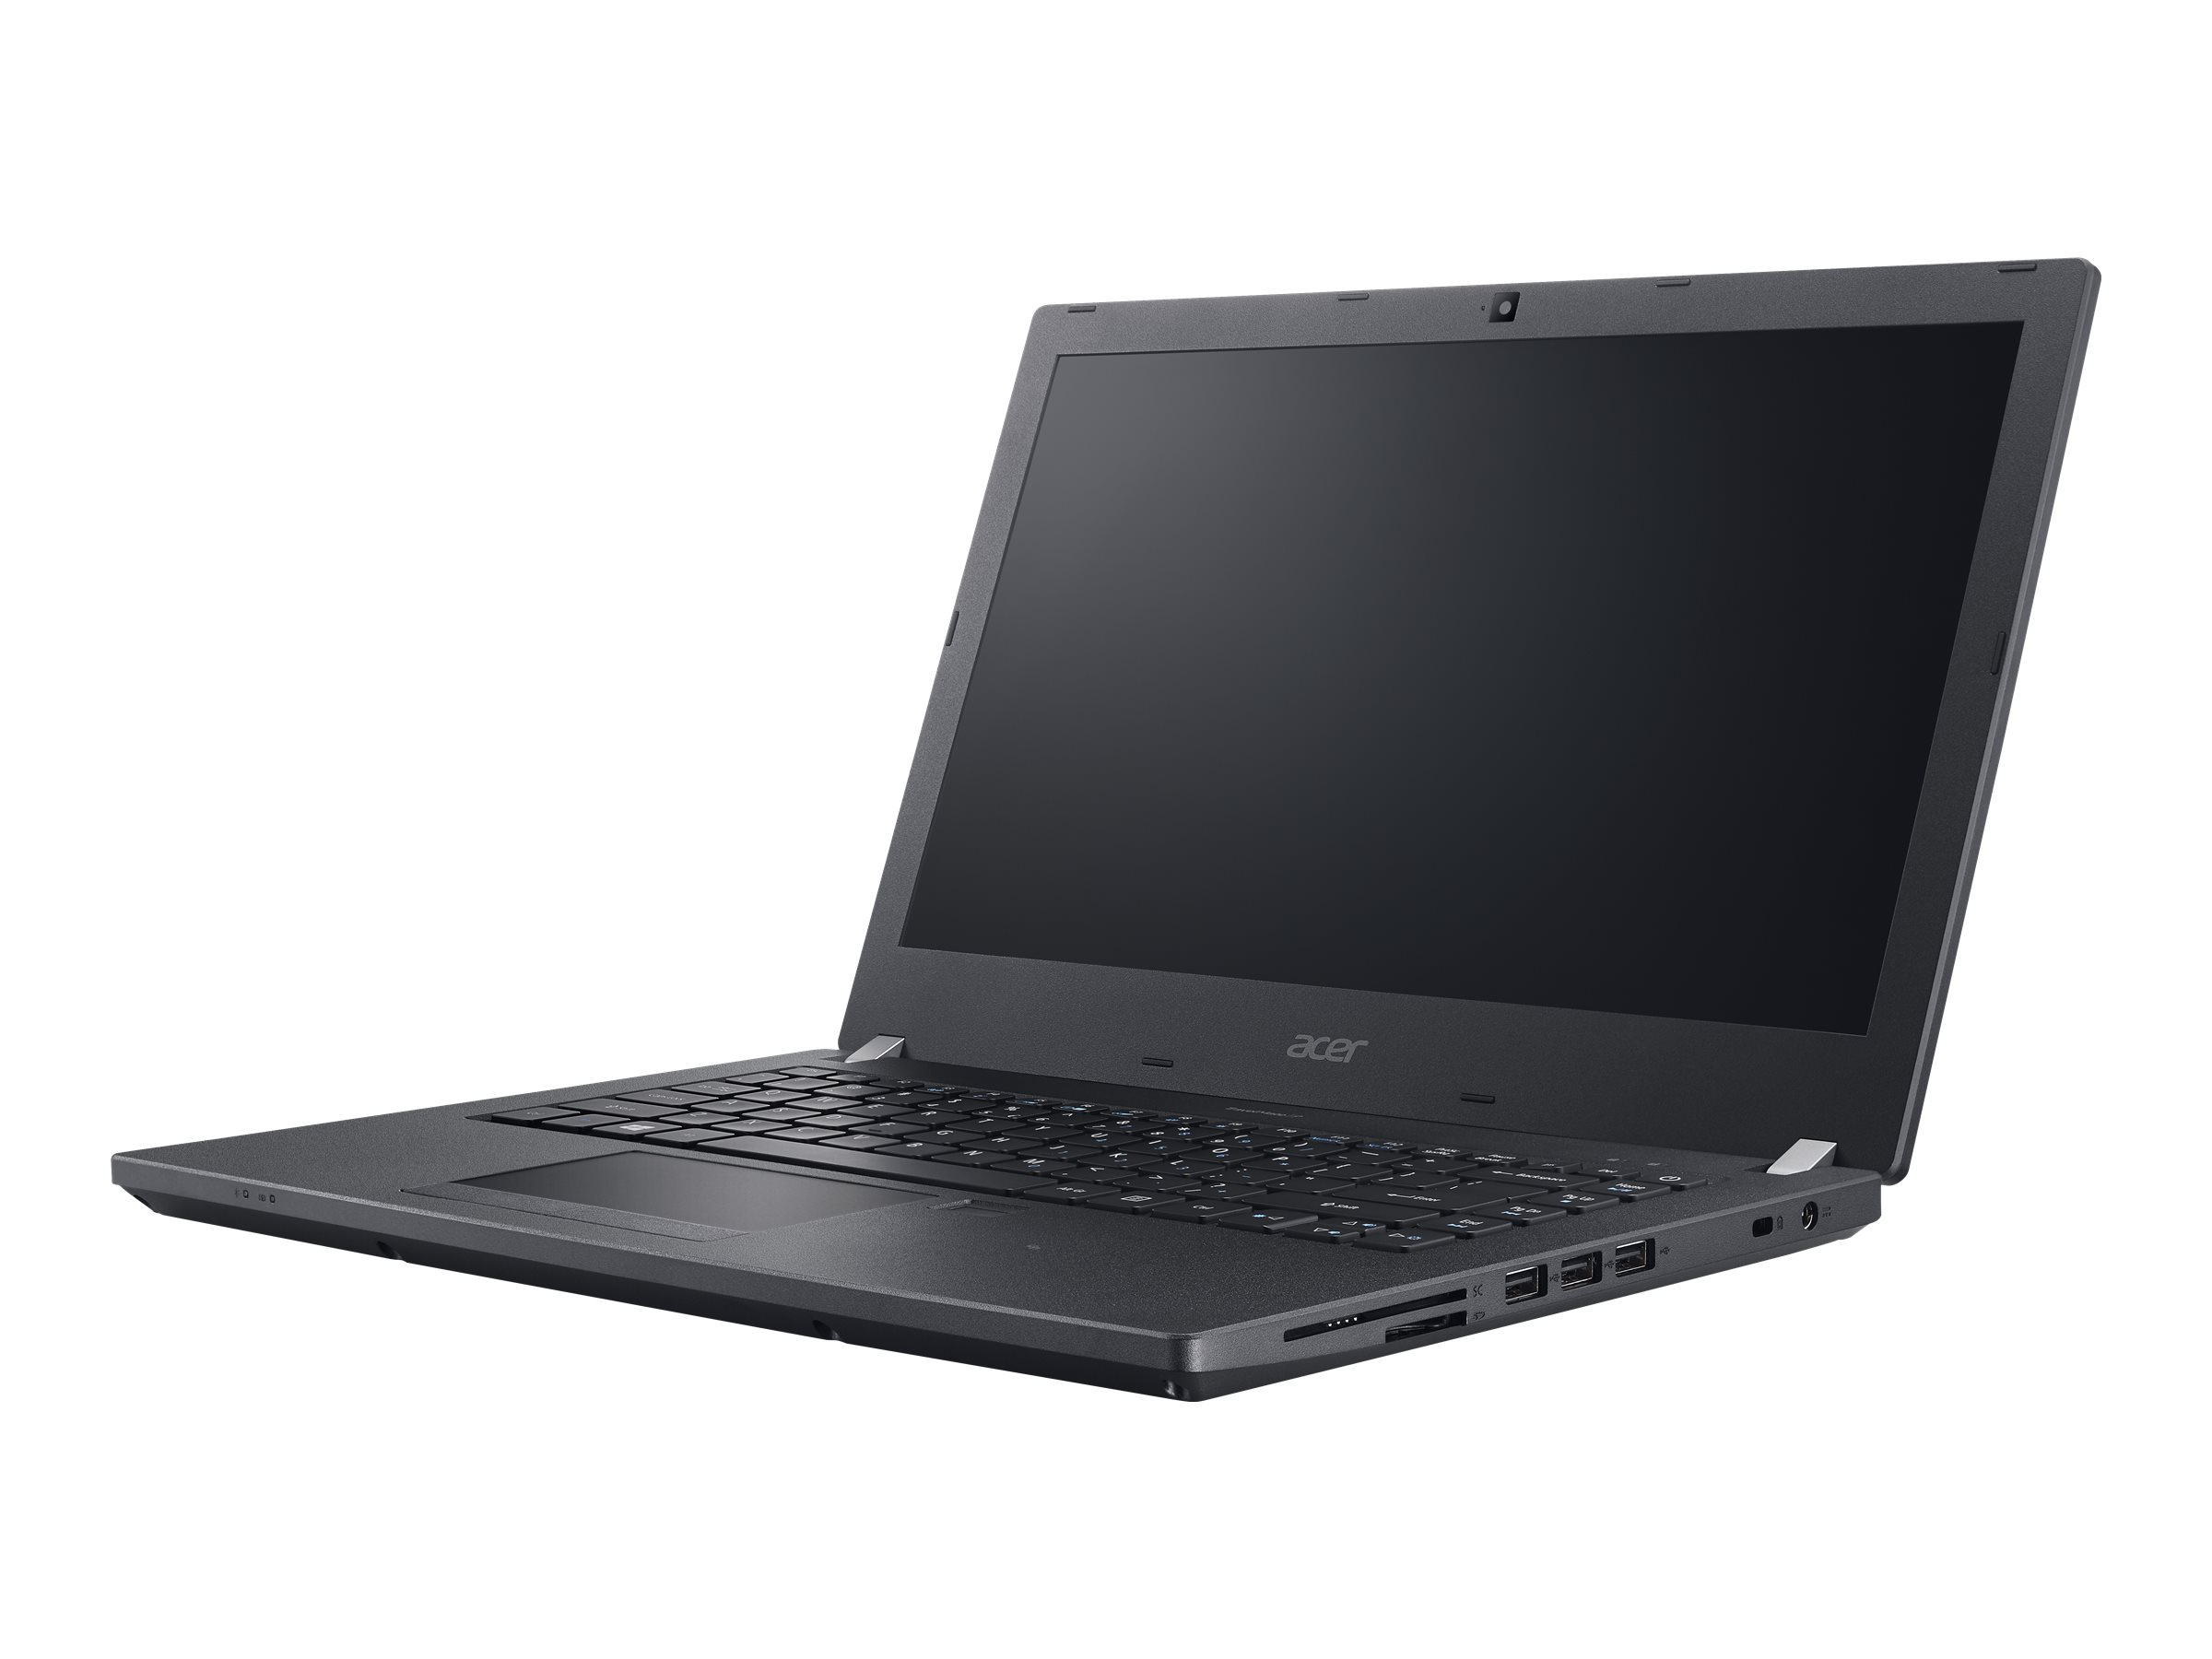 Acer TravelMate P459-M-74CD - Core i7 6500U / 2.5 GHz - Win 7 Pro 64-bit / Win 10 Pro 64-bit - 8 GB RAM - 256 GB SSD + 1 TB HDD - 39.6 cm (15.6z) IPS 1920 x 1080 (Full HD)